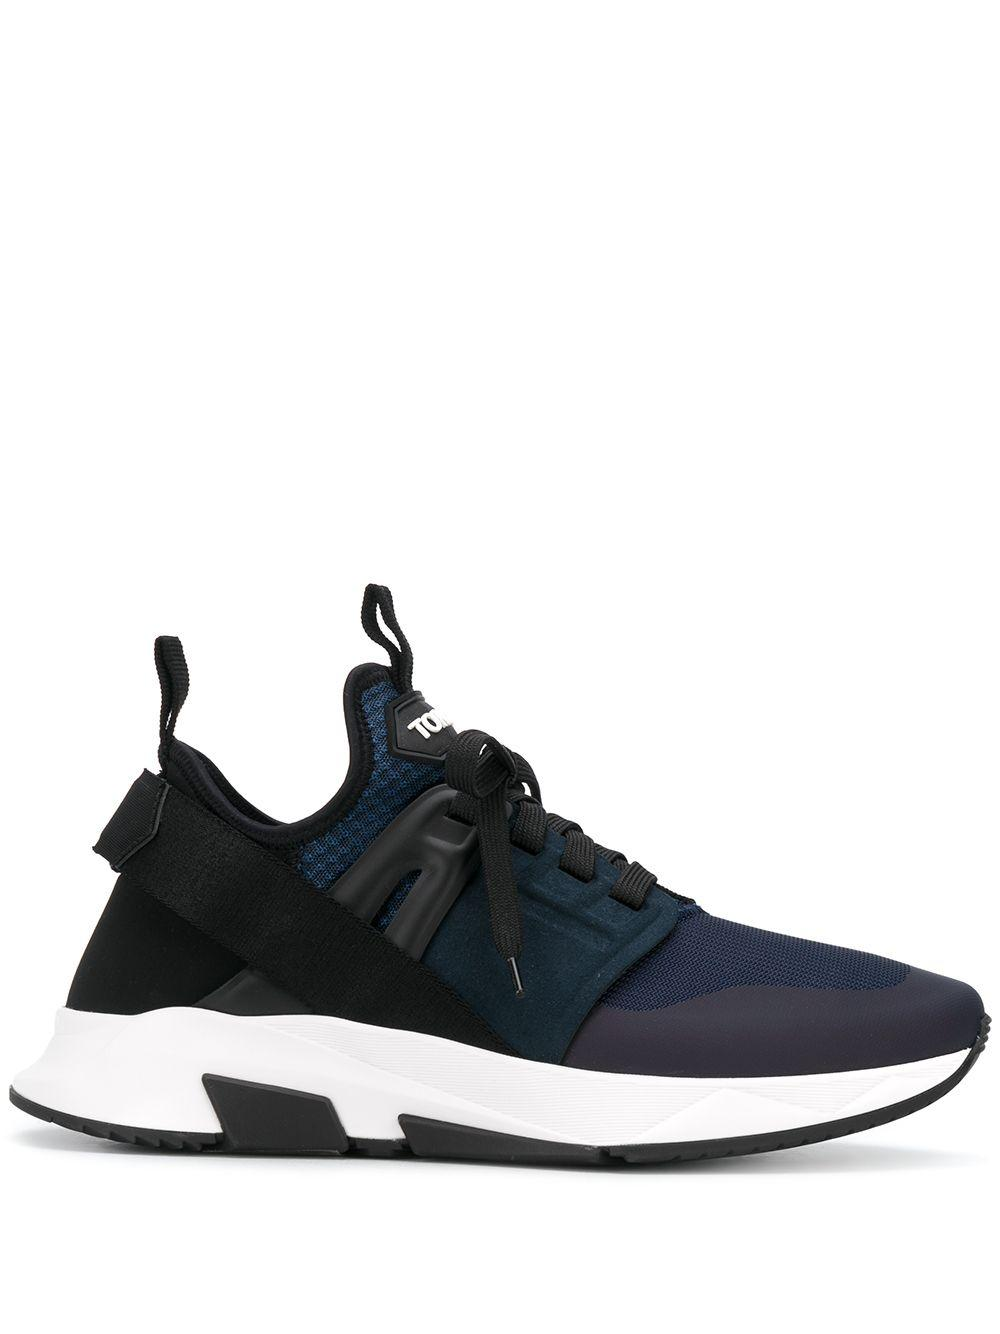 Jago Trainers in Navy (Blue) for Men